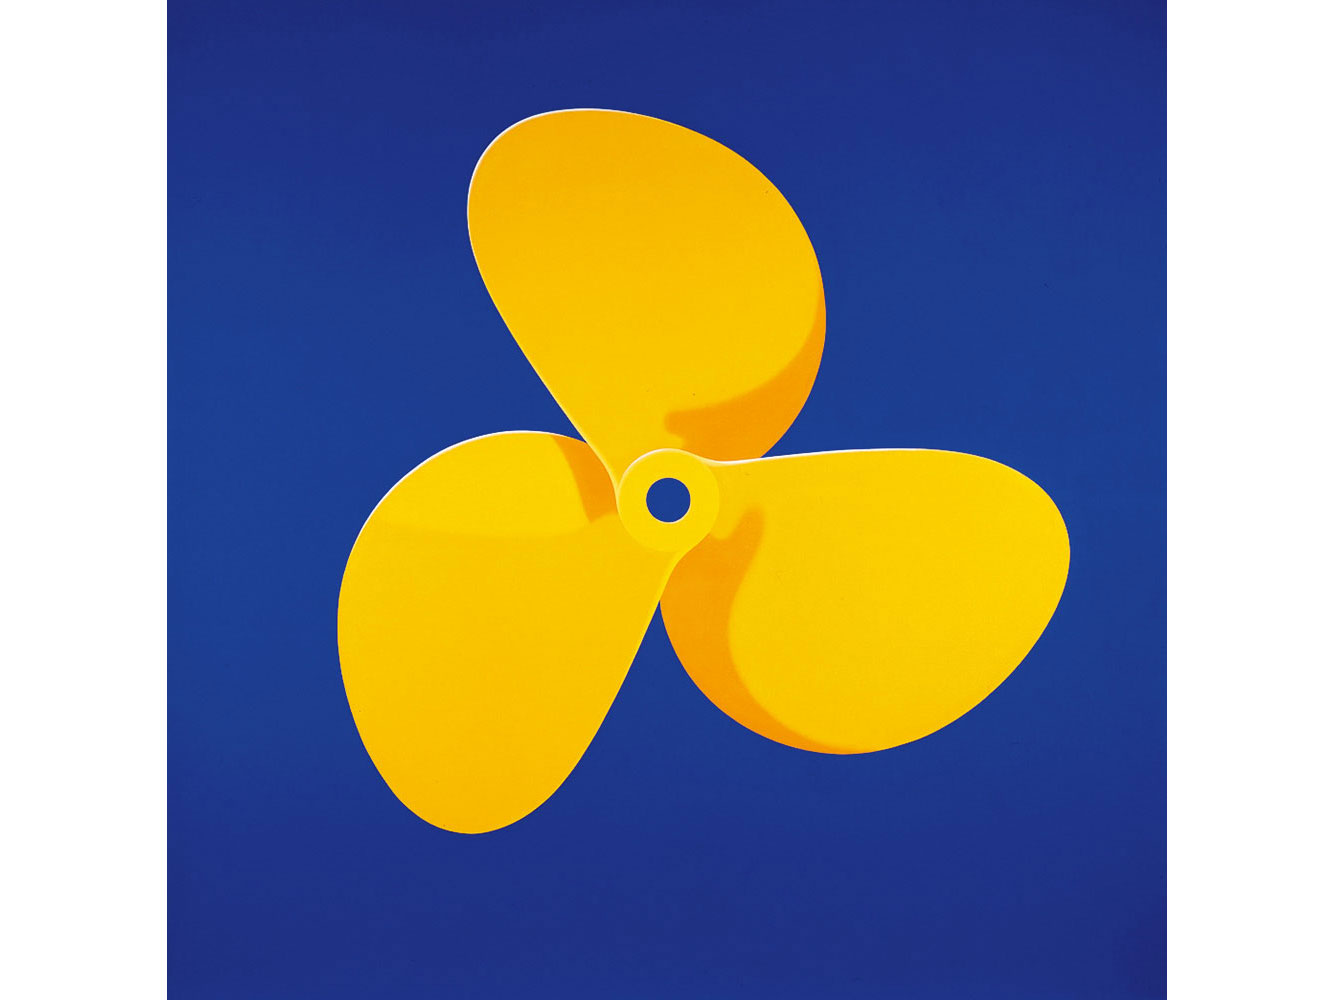 Manuscrito B, 1997. Acrylic / canvas. 180 x 180 cm